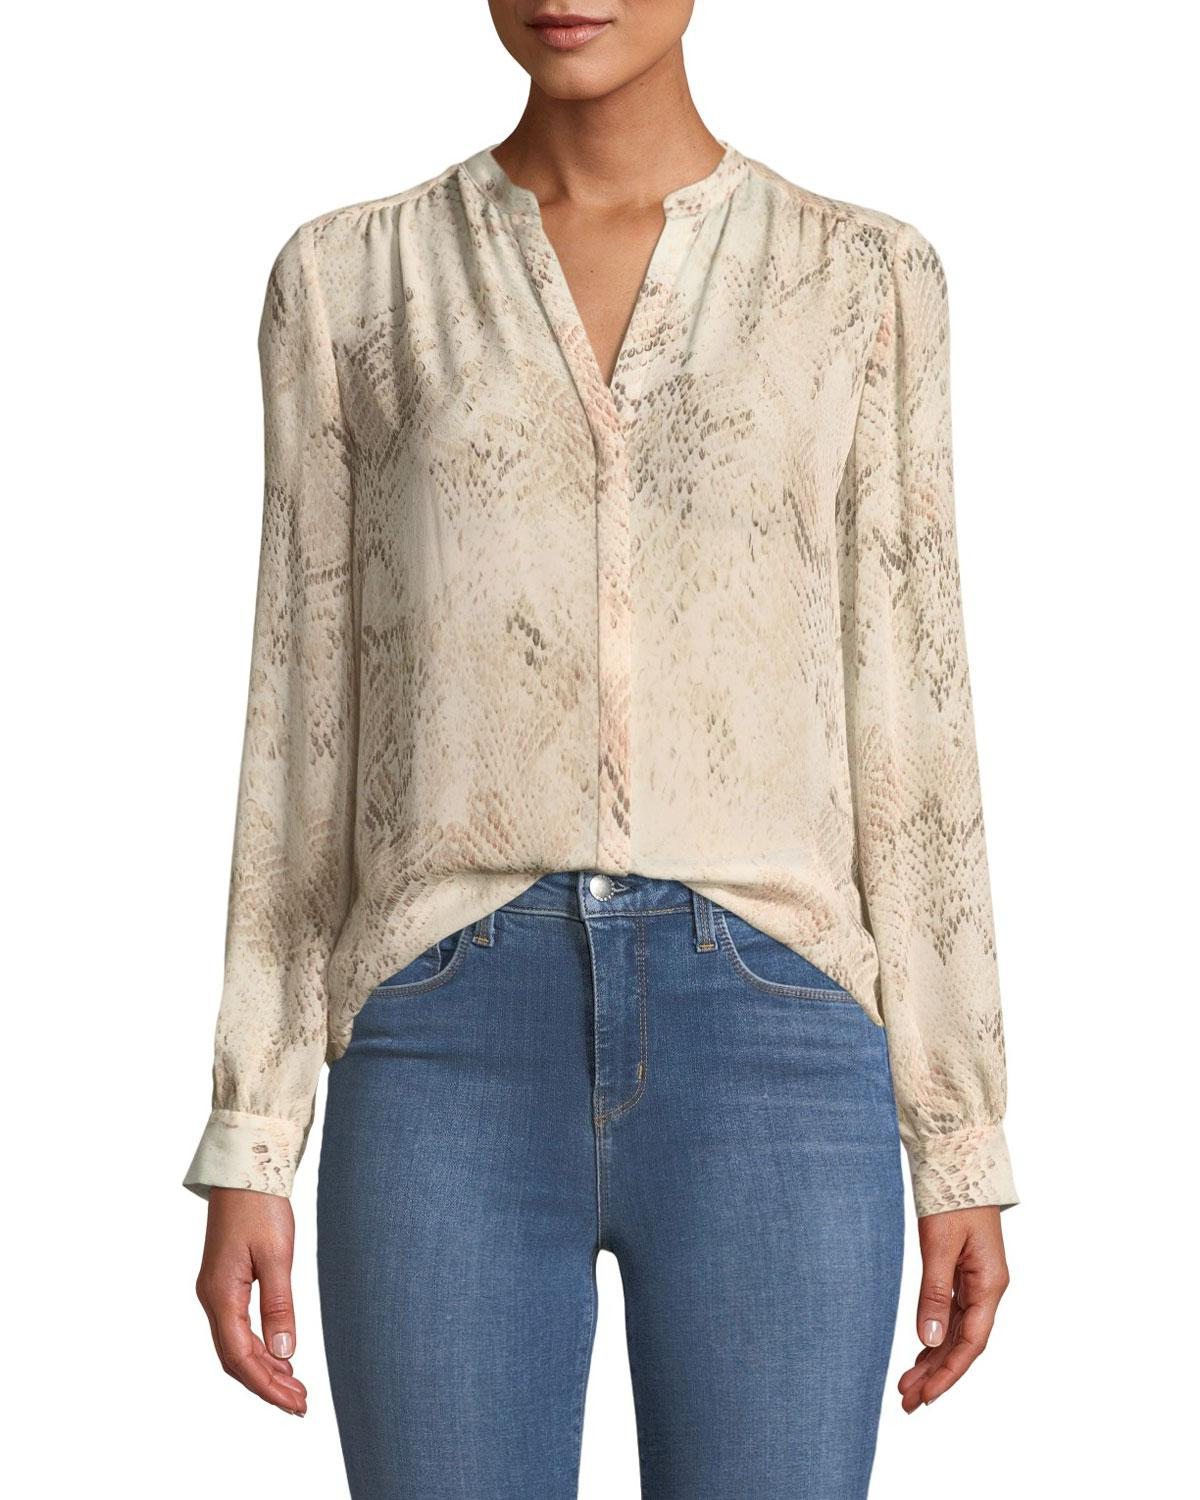 6f7449583bfafc Lyst - L Agence Bardot Snakeskin-print Silk Button-front Blouse in Pink